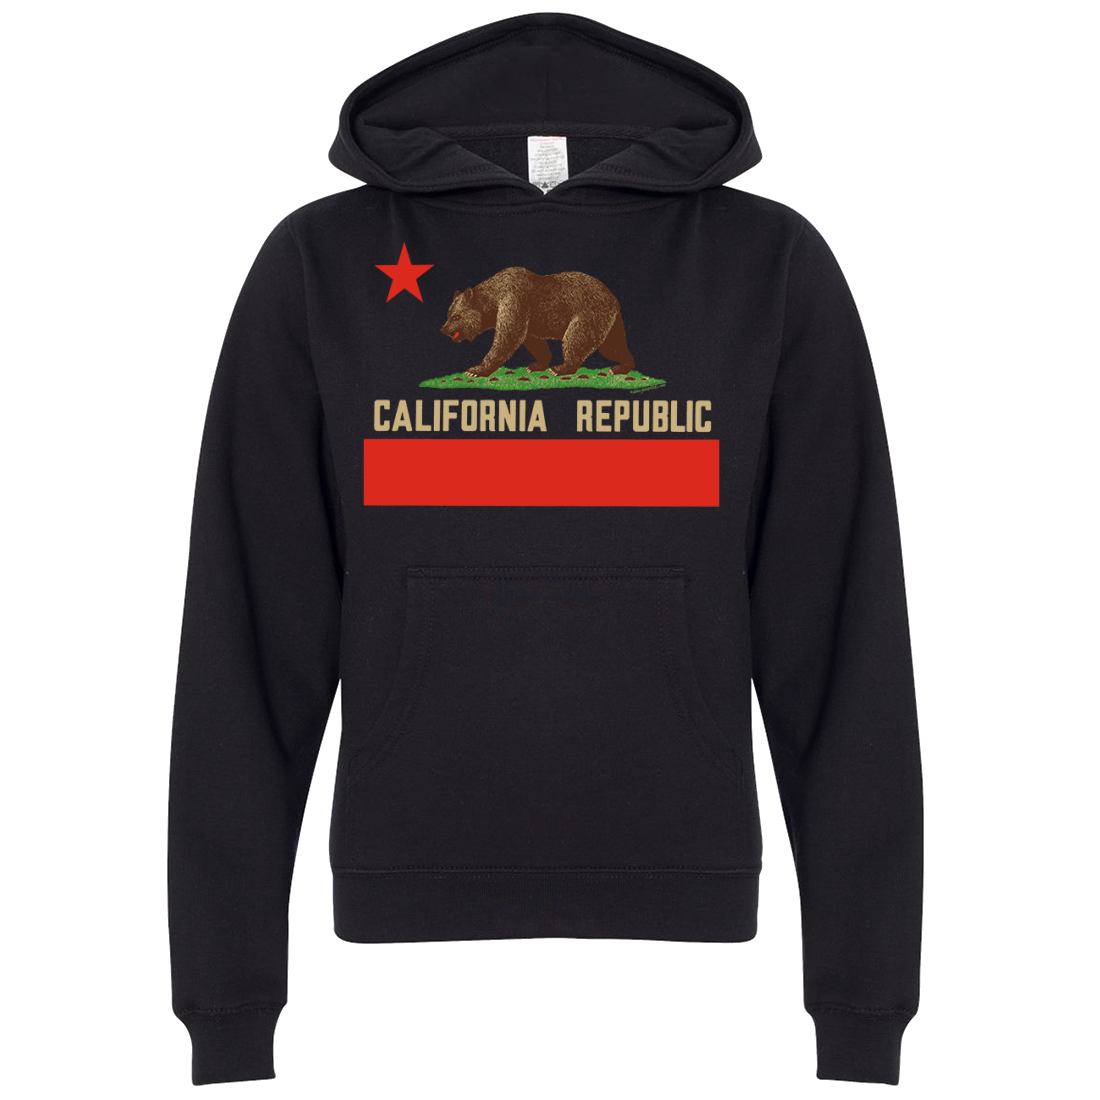 Don Pimentel California Republic Bear Flag Premium Youth Sweatshirt Hoodie